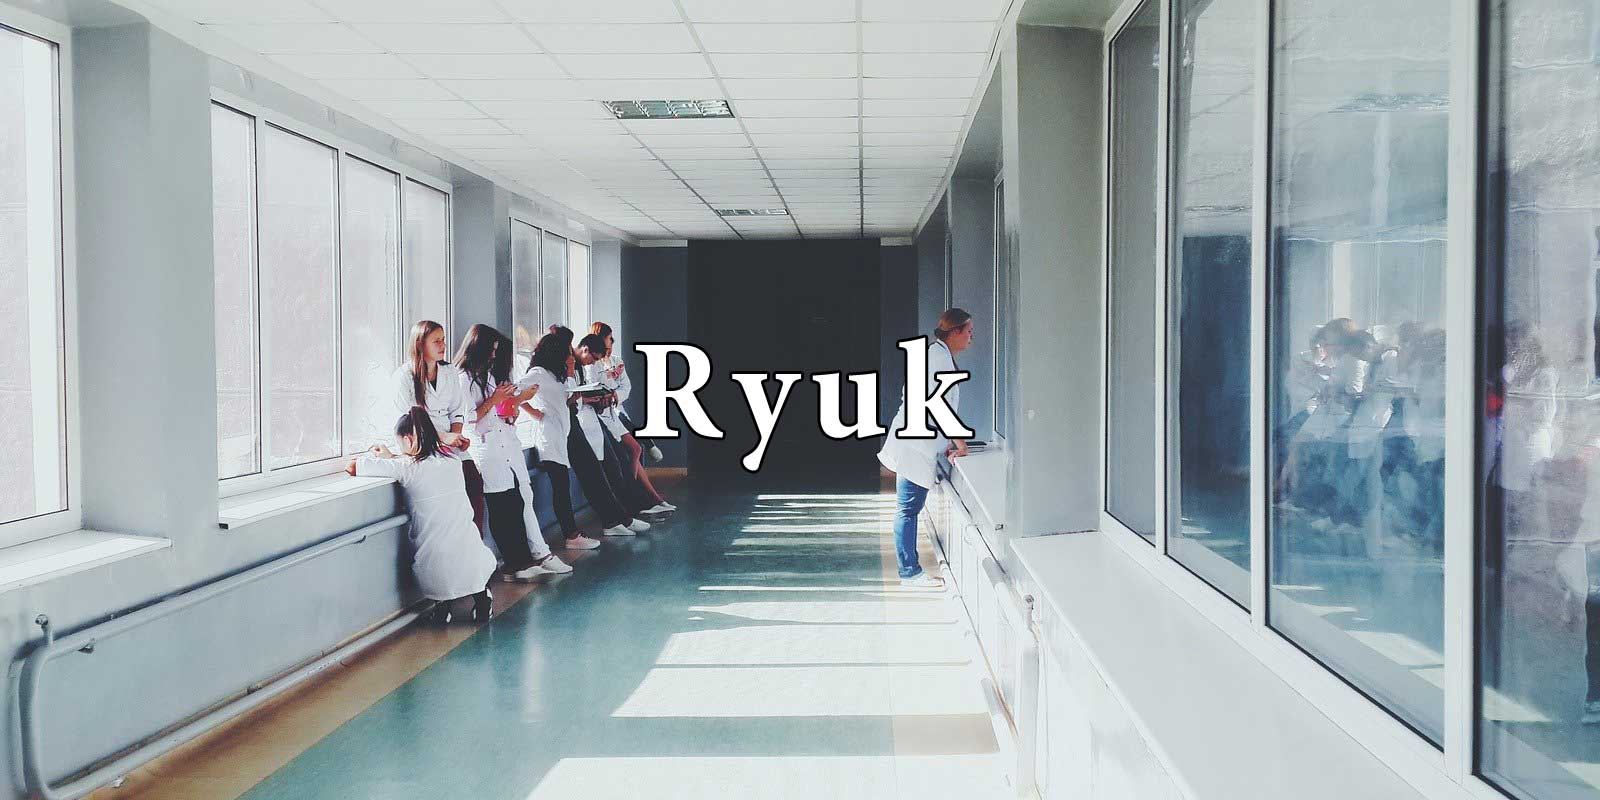 Hacking Group Is Targeting US Hospitals With Ryuk Ransomware